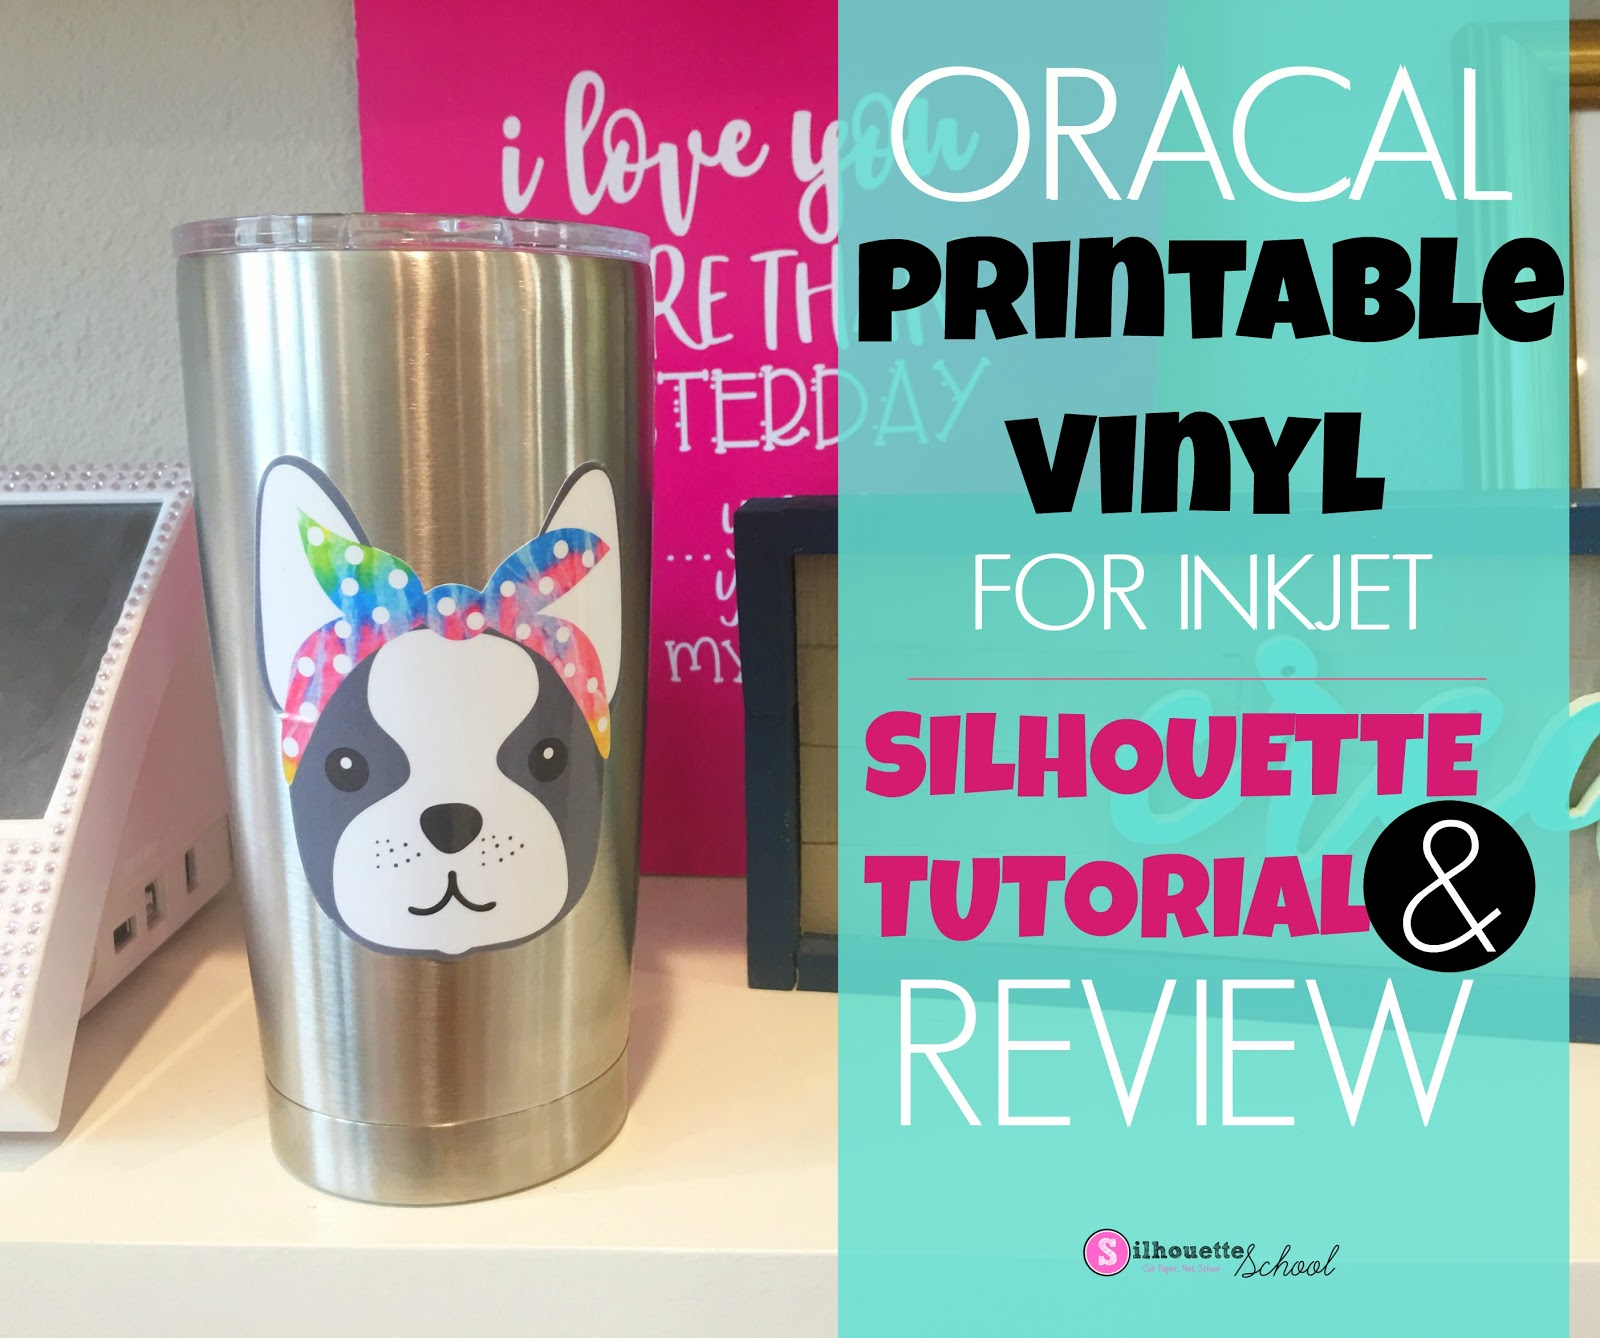 Oracal Printable Vinyl For Inkjet Printers Review And Beginner Silhouette Tutorial Silhouette School